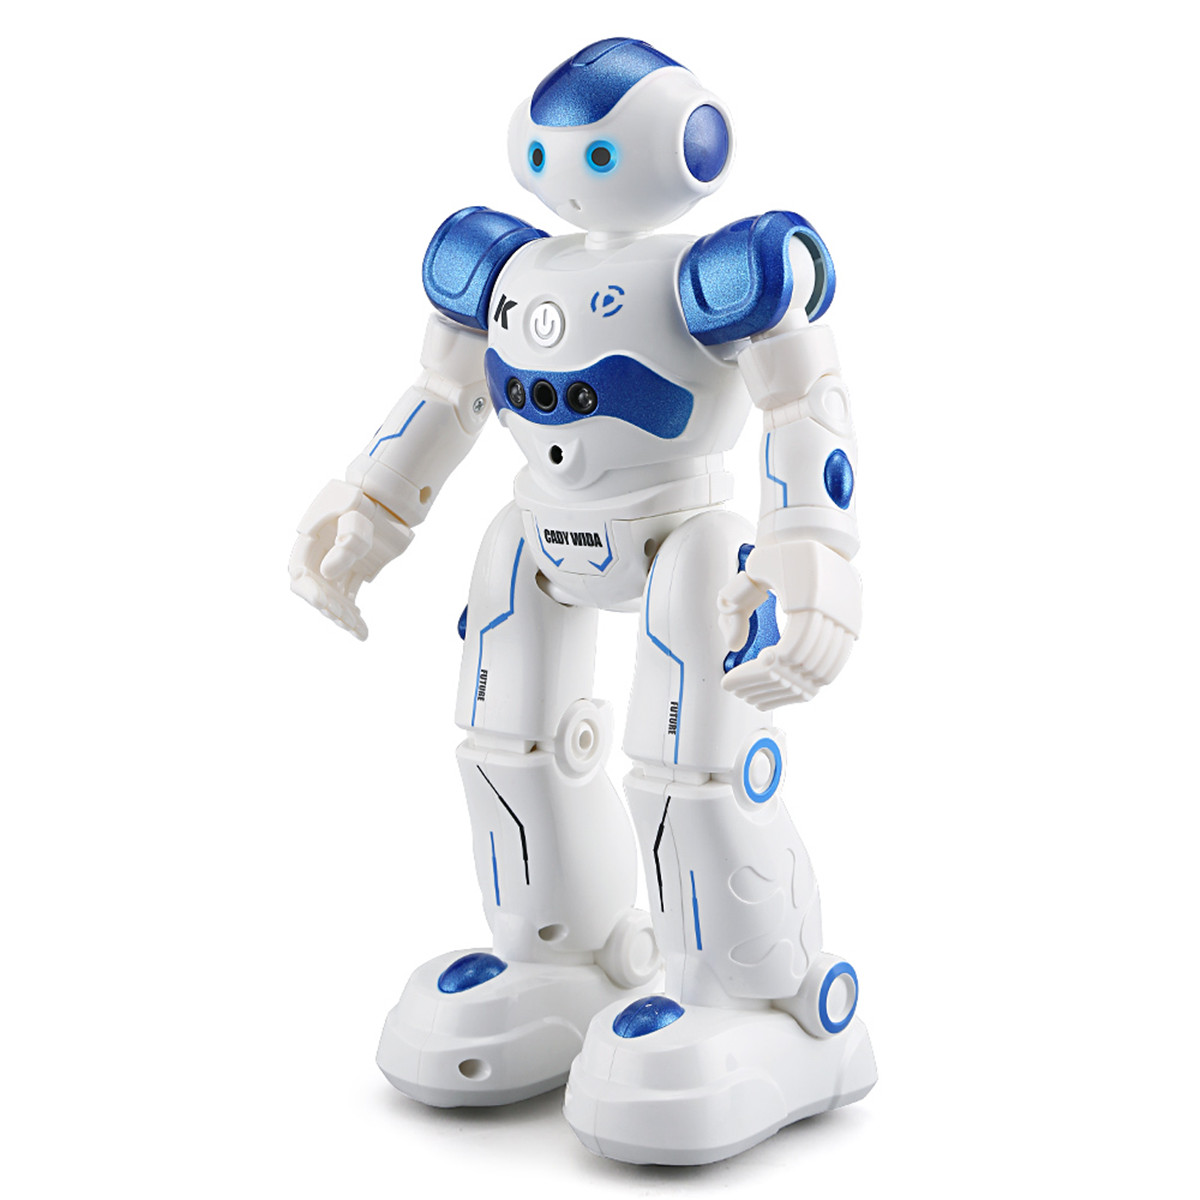 Friendly Leory R4 Cute Rc Robot With Piggy Bank Voice Control Intelligent Robot Remote Control Gesture Control For Children Education Robot